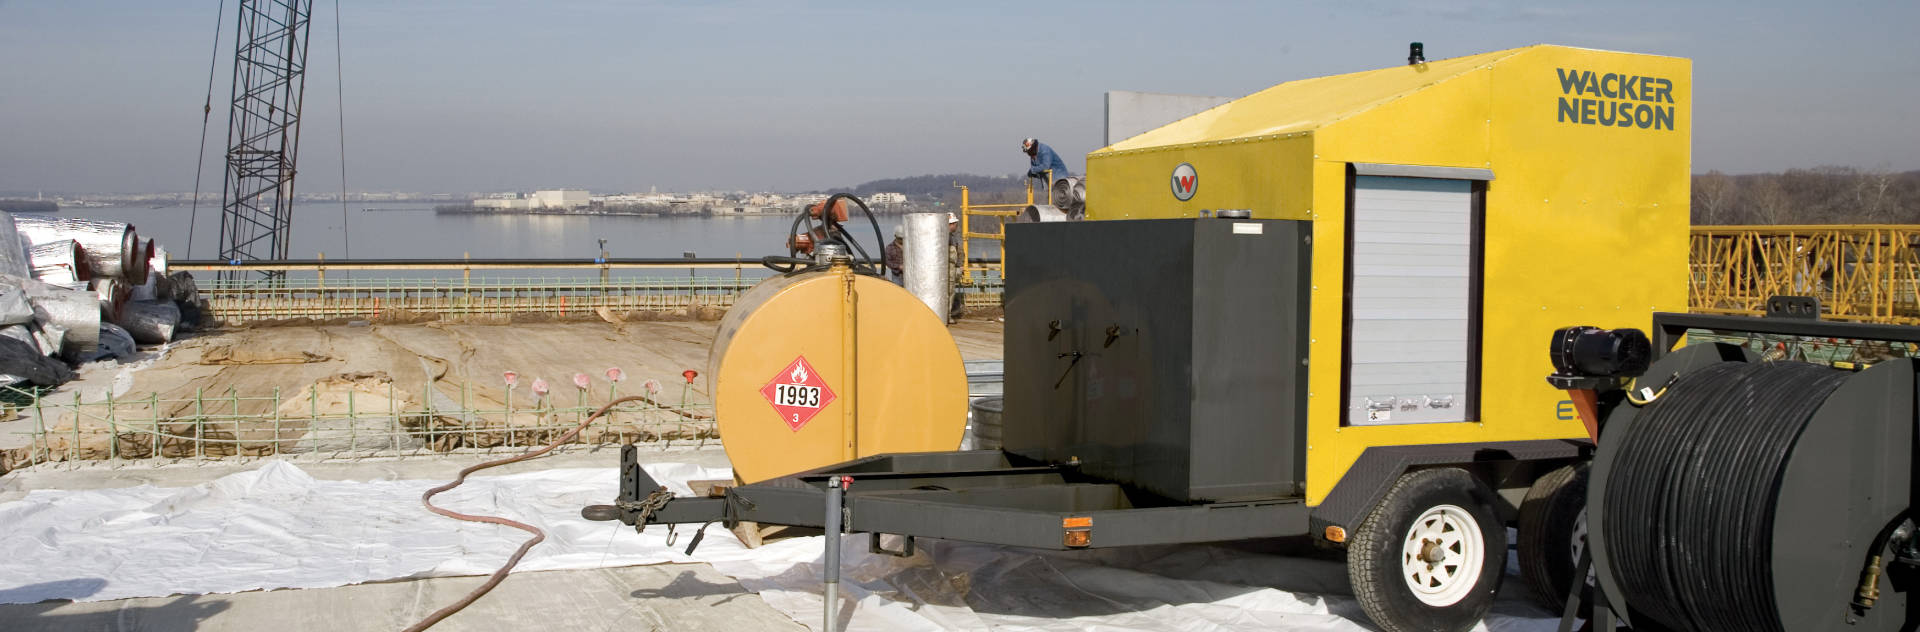 Wacker ground heater rentals from RentalMax in Chicagoland